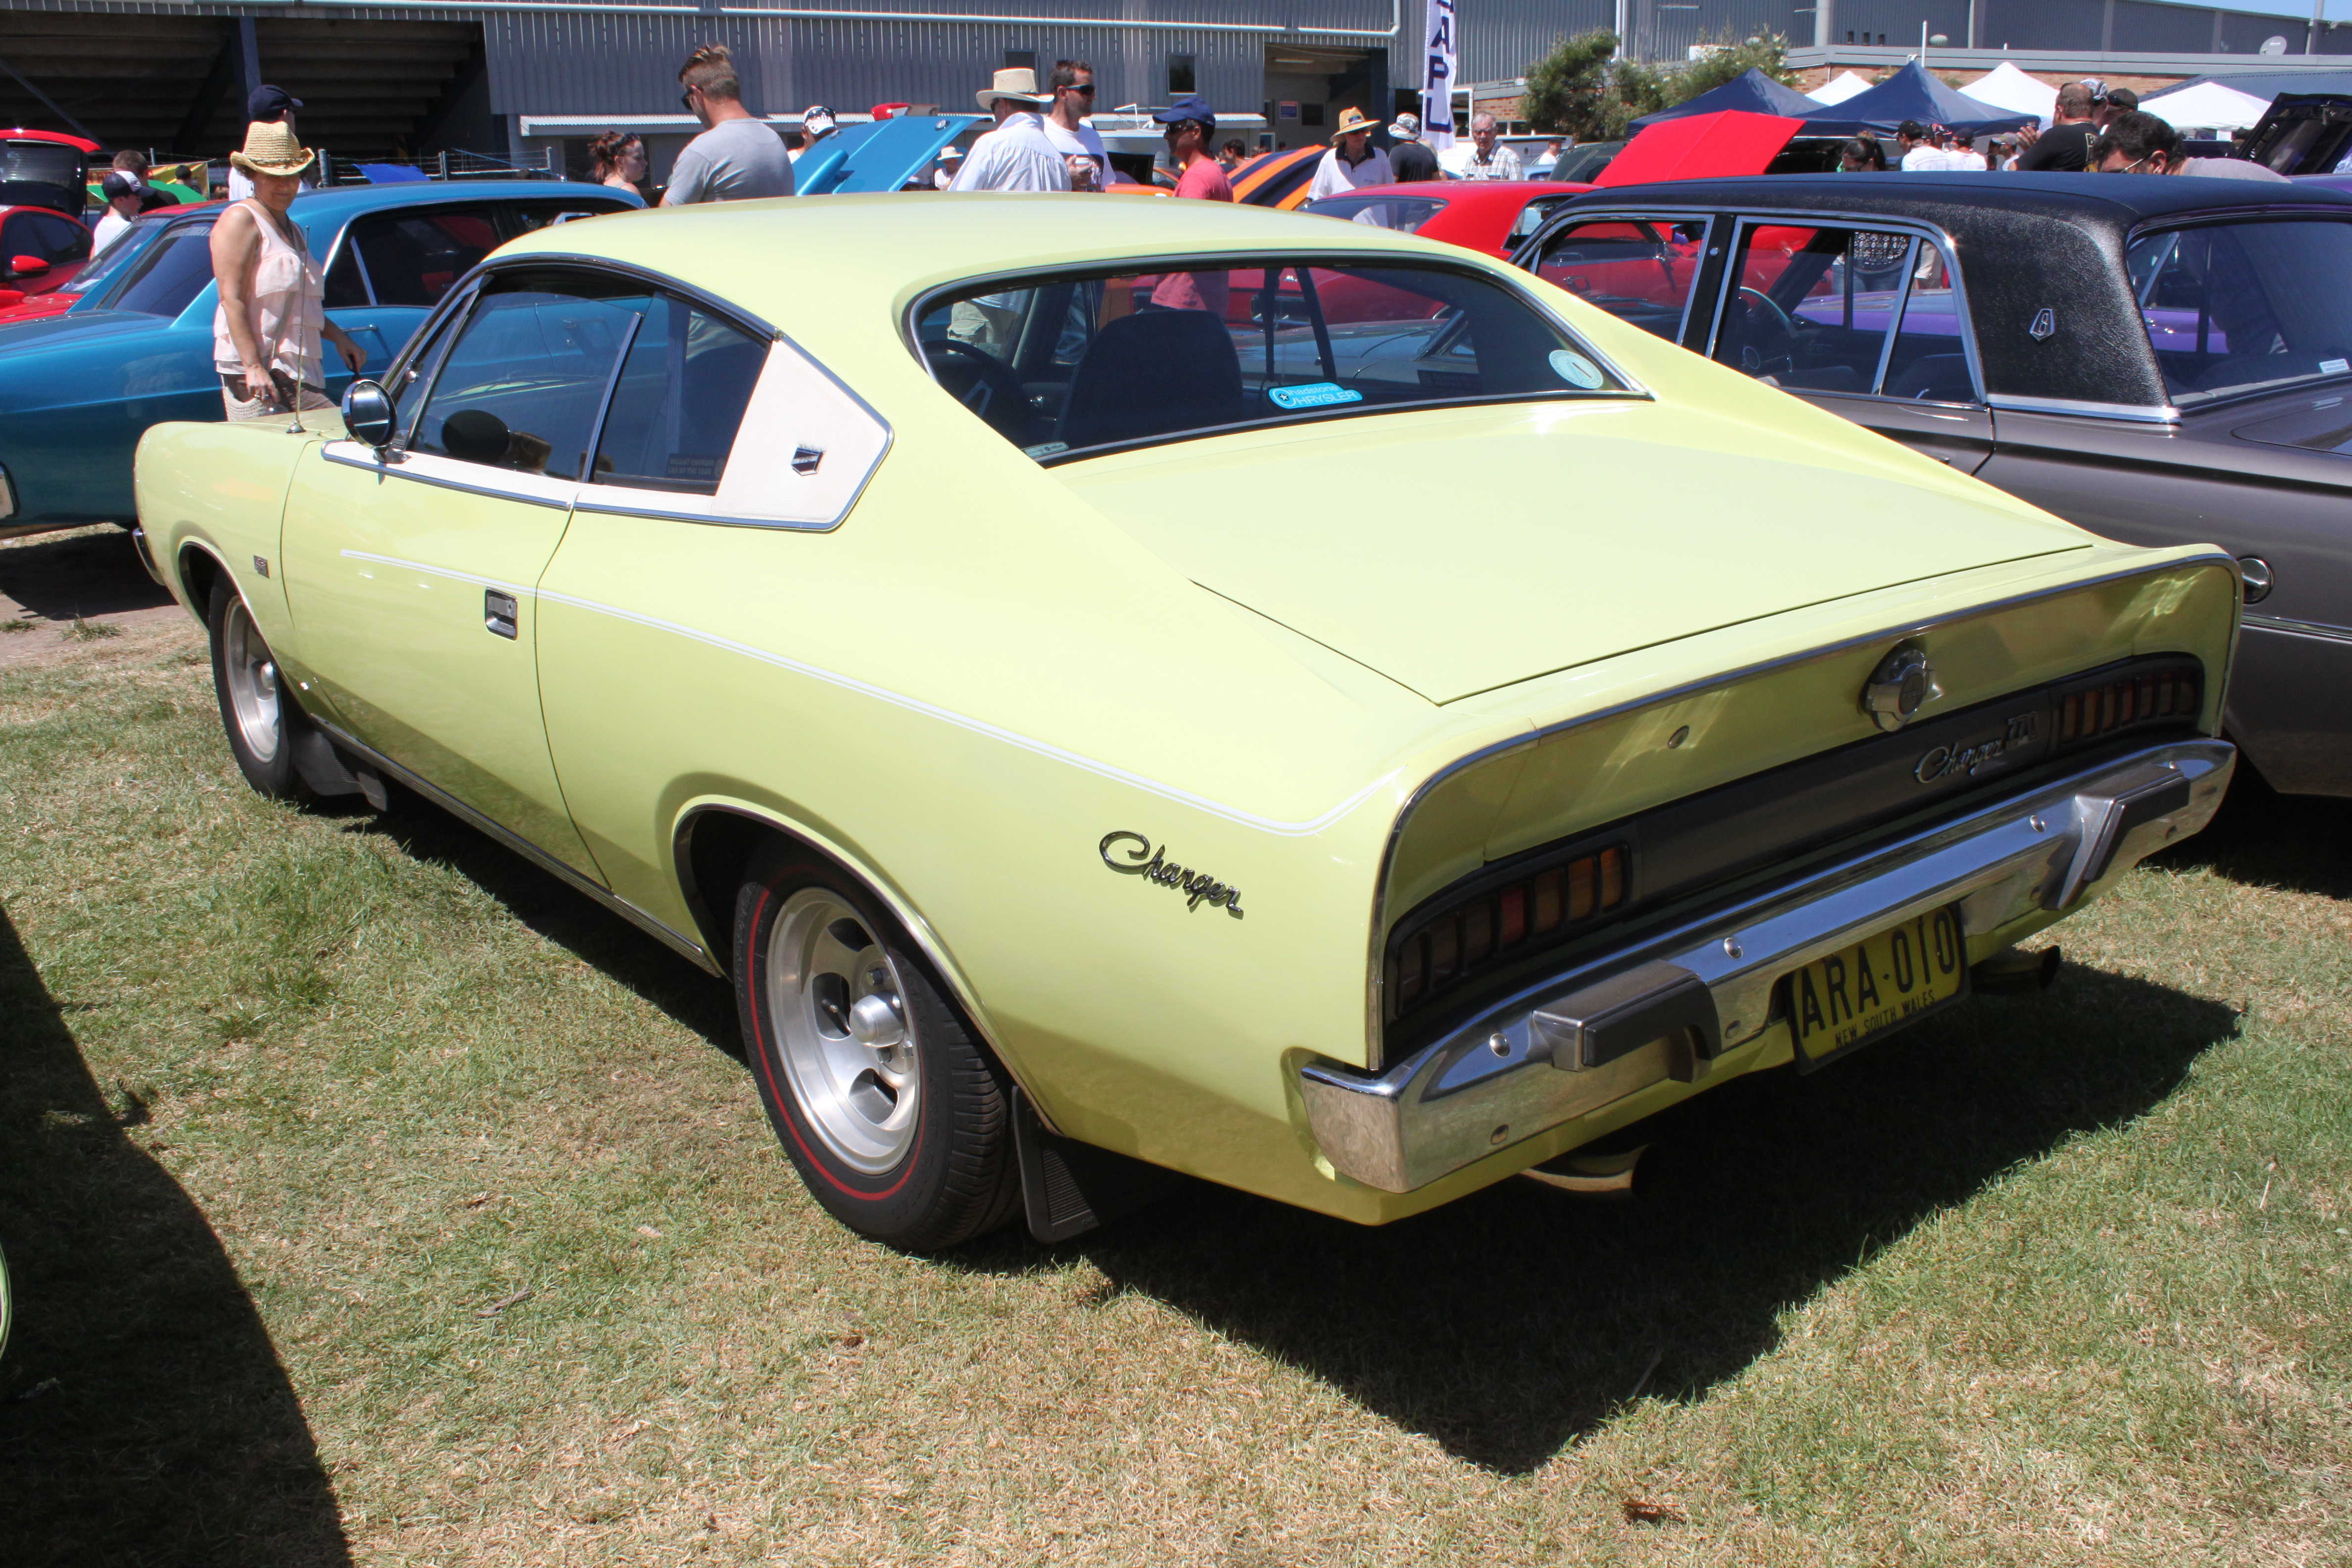 1971_Chrysler_Valiant_%28VH%29_Charger_7